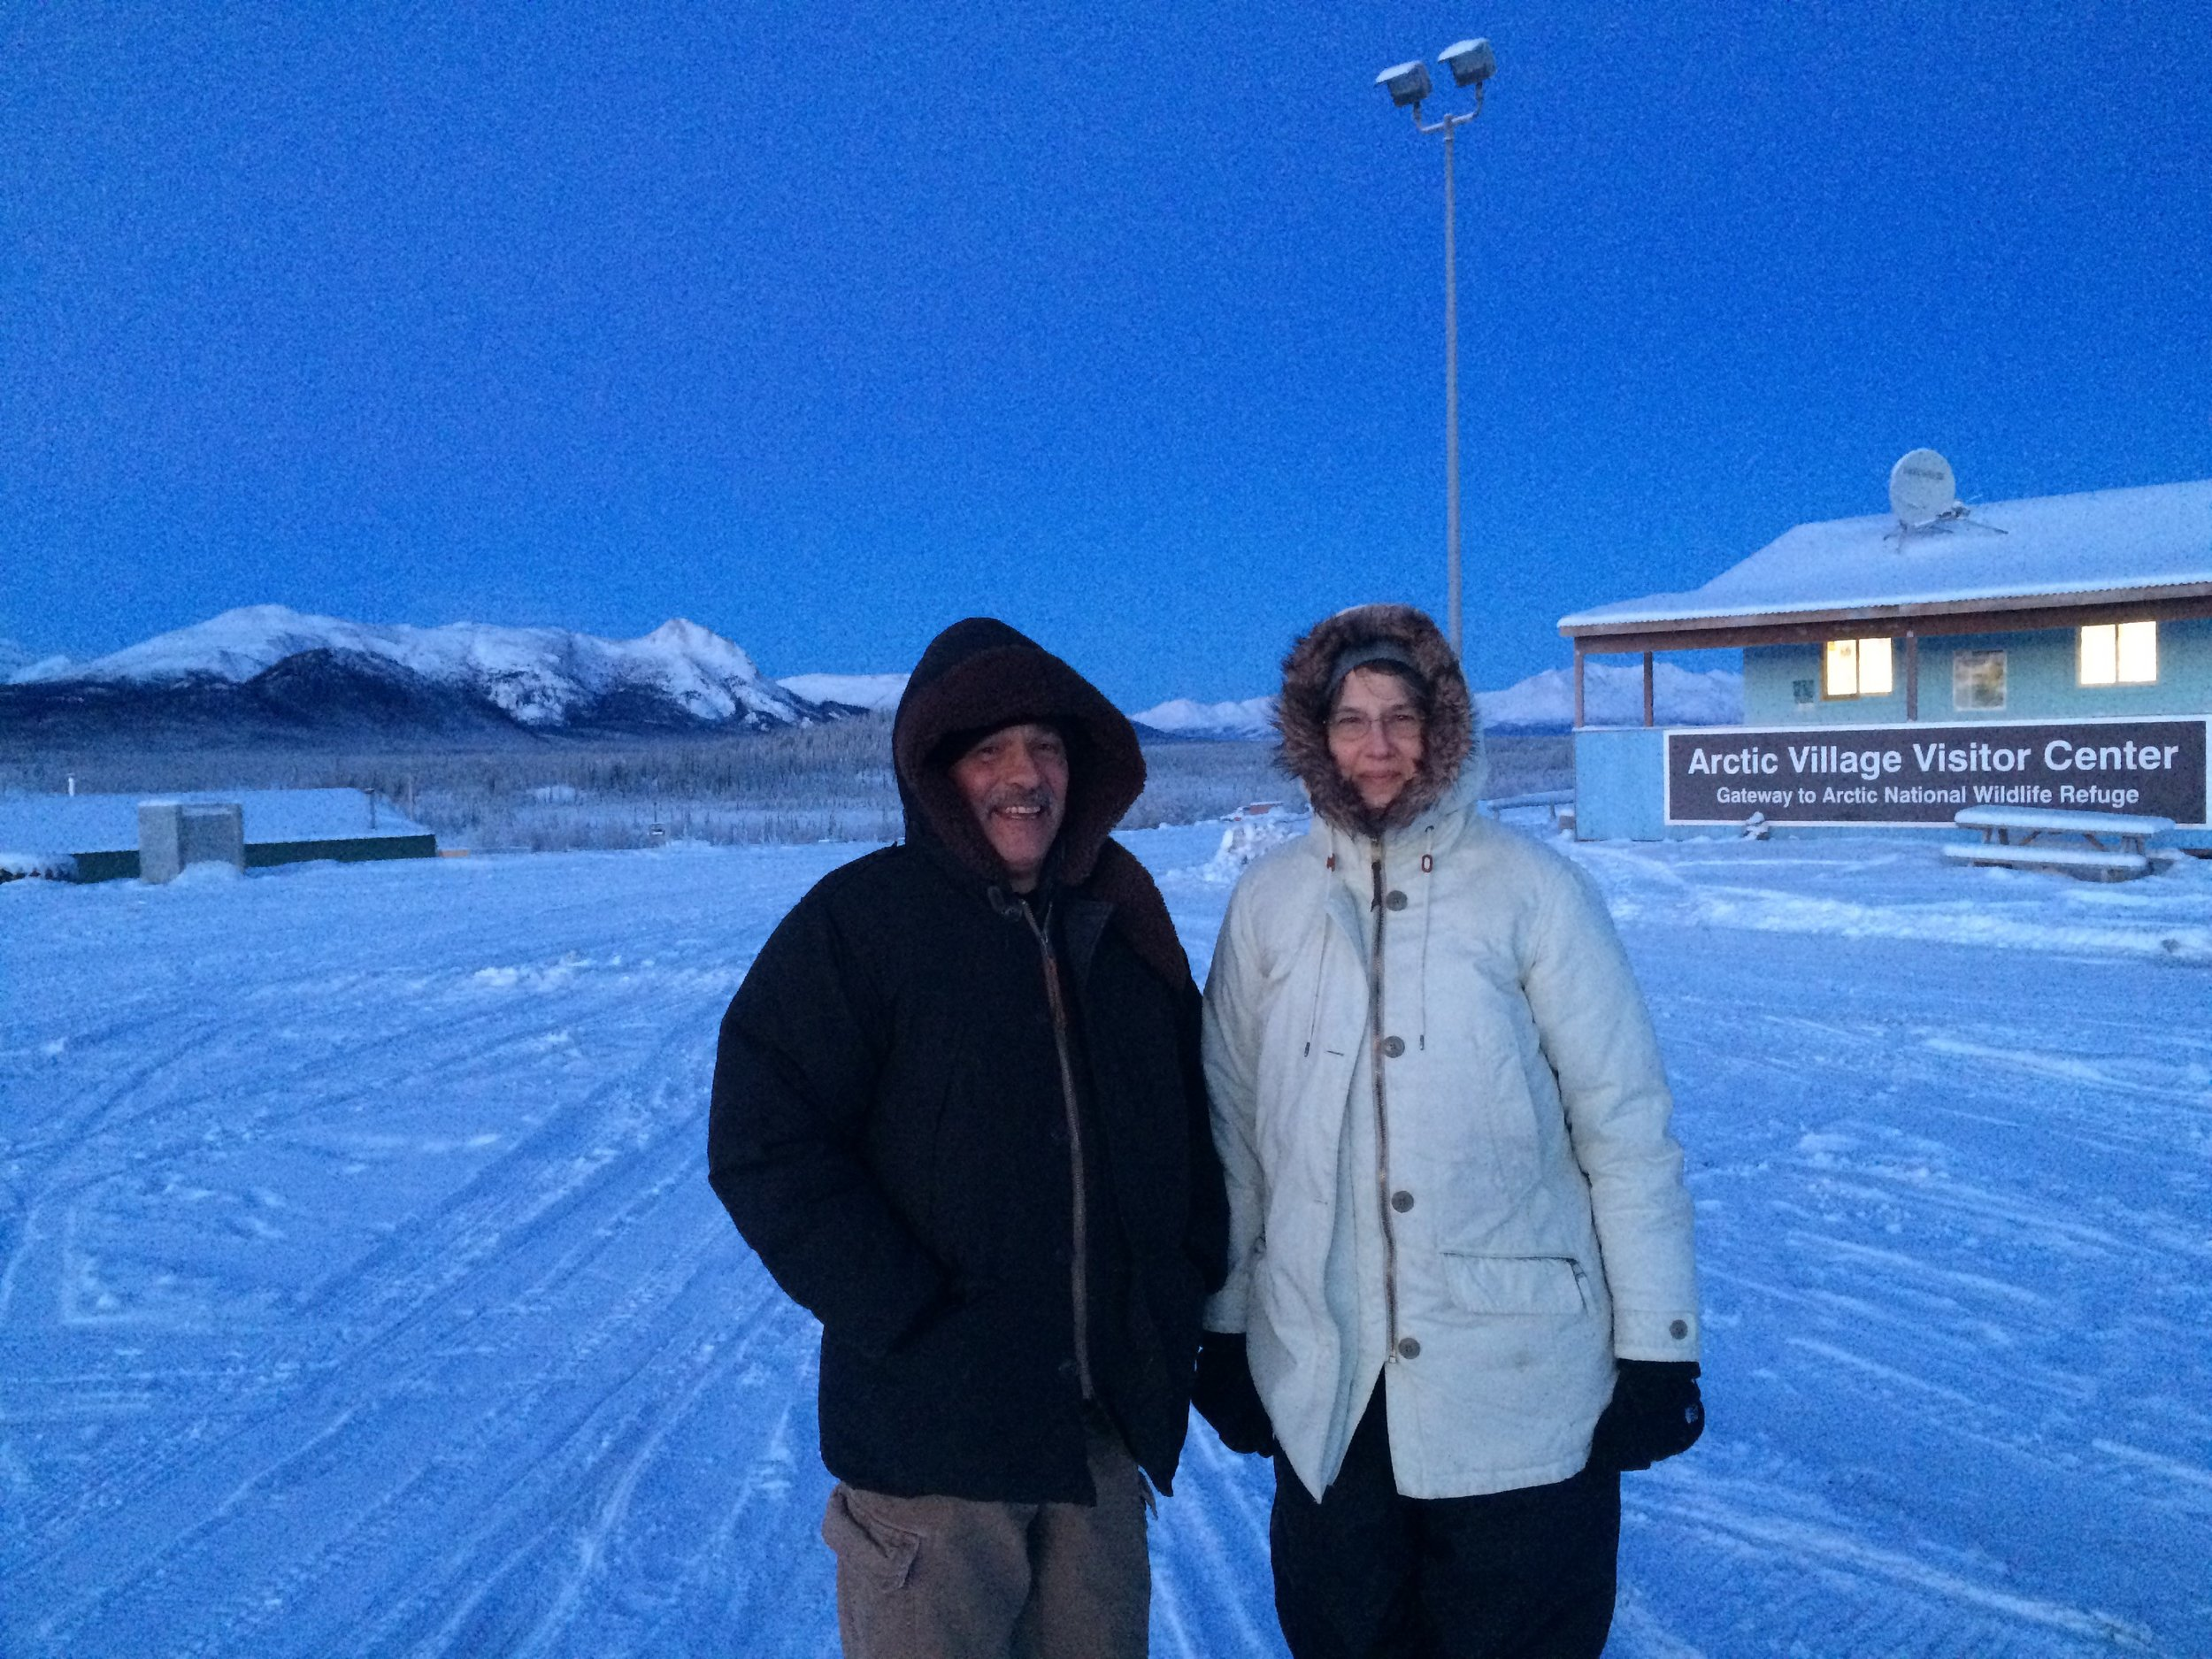 Dave and Rosemary in Arctic Village, a two hour flight, to share a meal and fellowship.